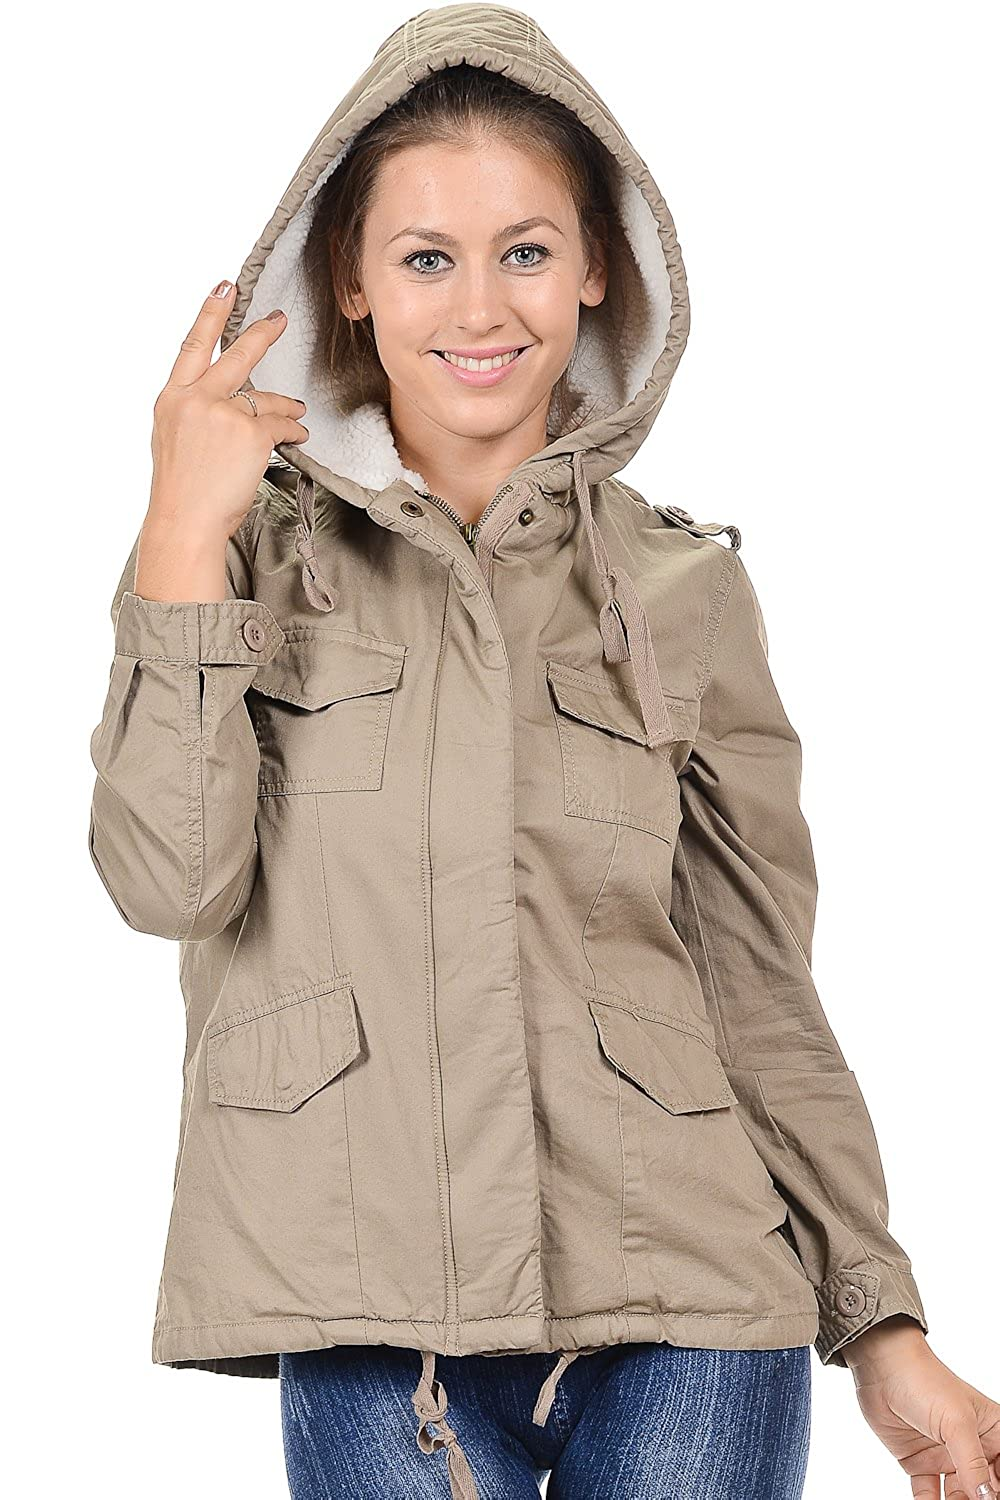 YourStyle Military Lightweight Drawstring Jacket-Versatile Anorak Parka Jackets(S-3XL)